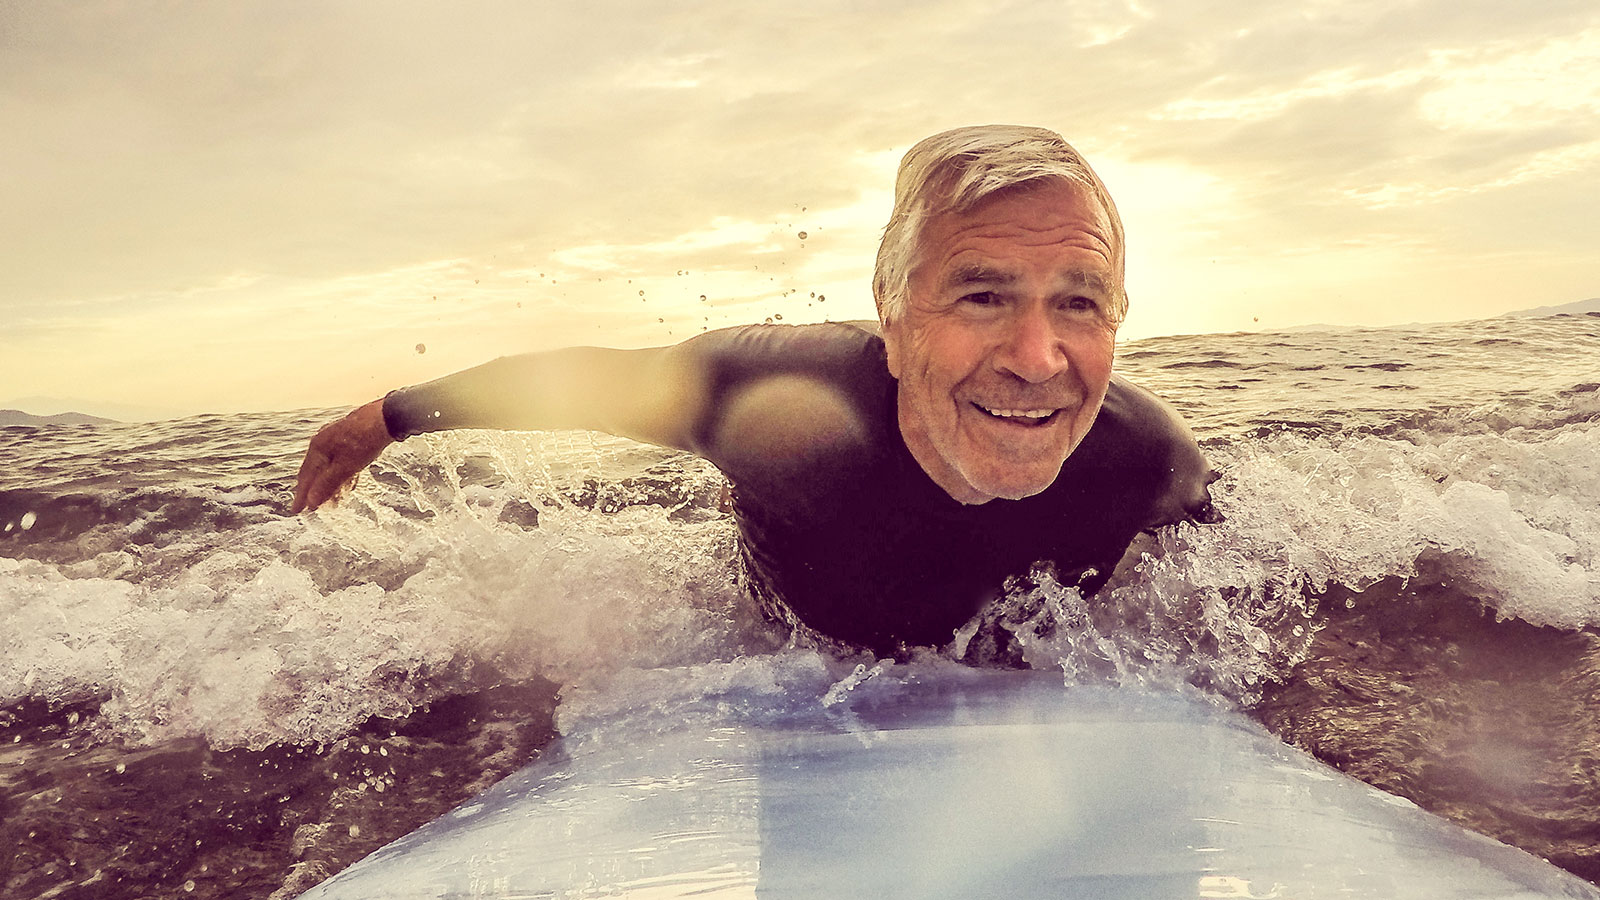 6 ways to score a fulfilling job when you're over 50